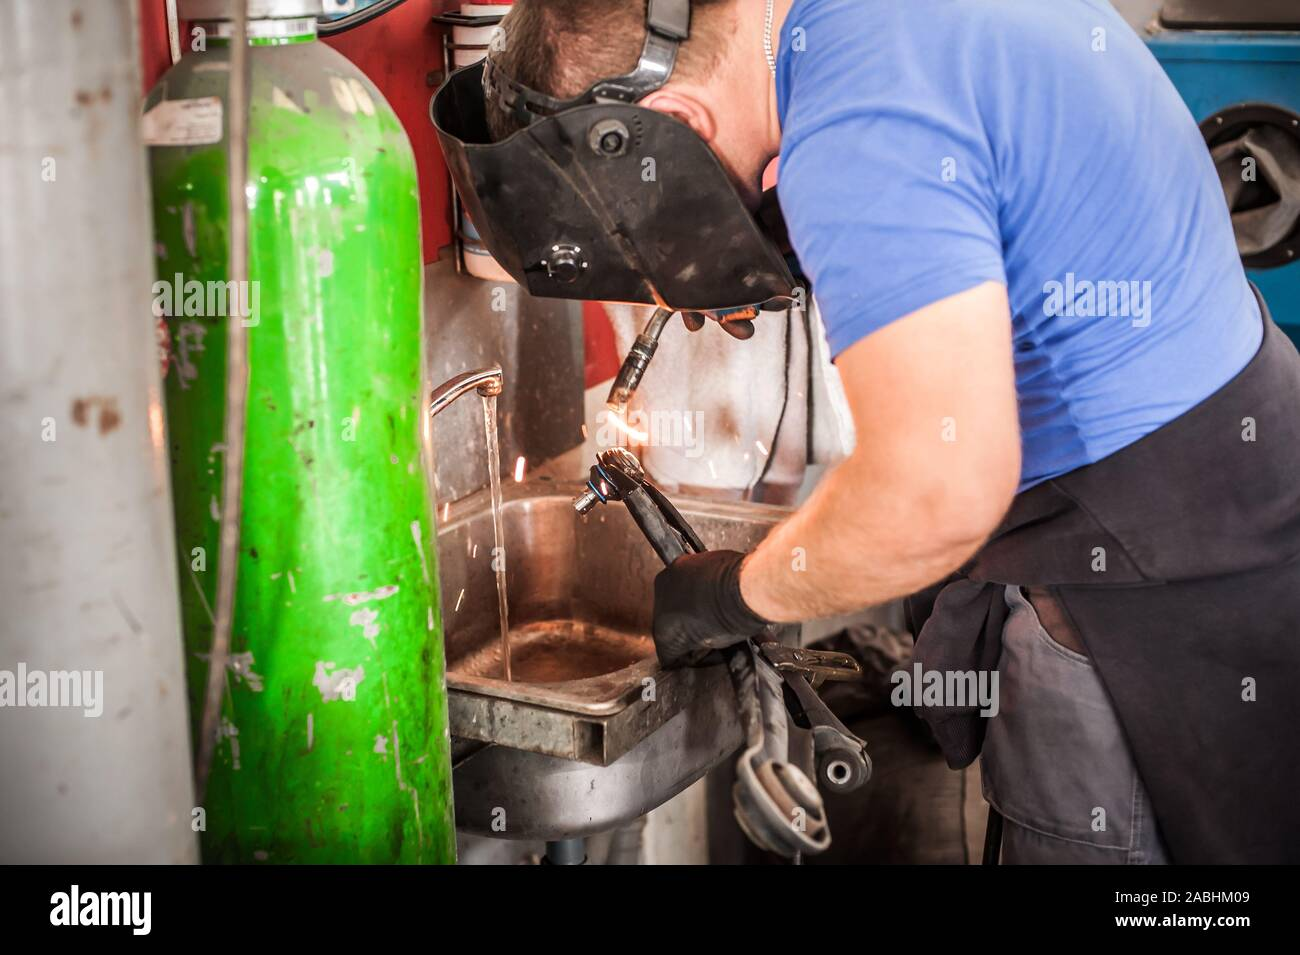 Auto Mechanic Working With Welding Mask Cooking Metal On Automatic Welding Machine For Repairing Cardan Shafts In Service Workshop Sparks Flying In T Stock Photo Alamy